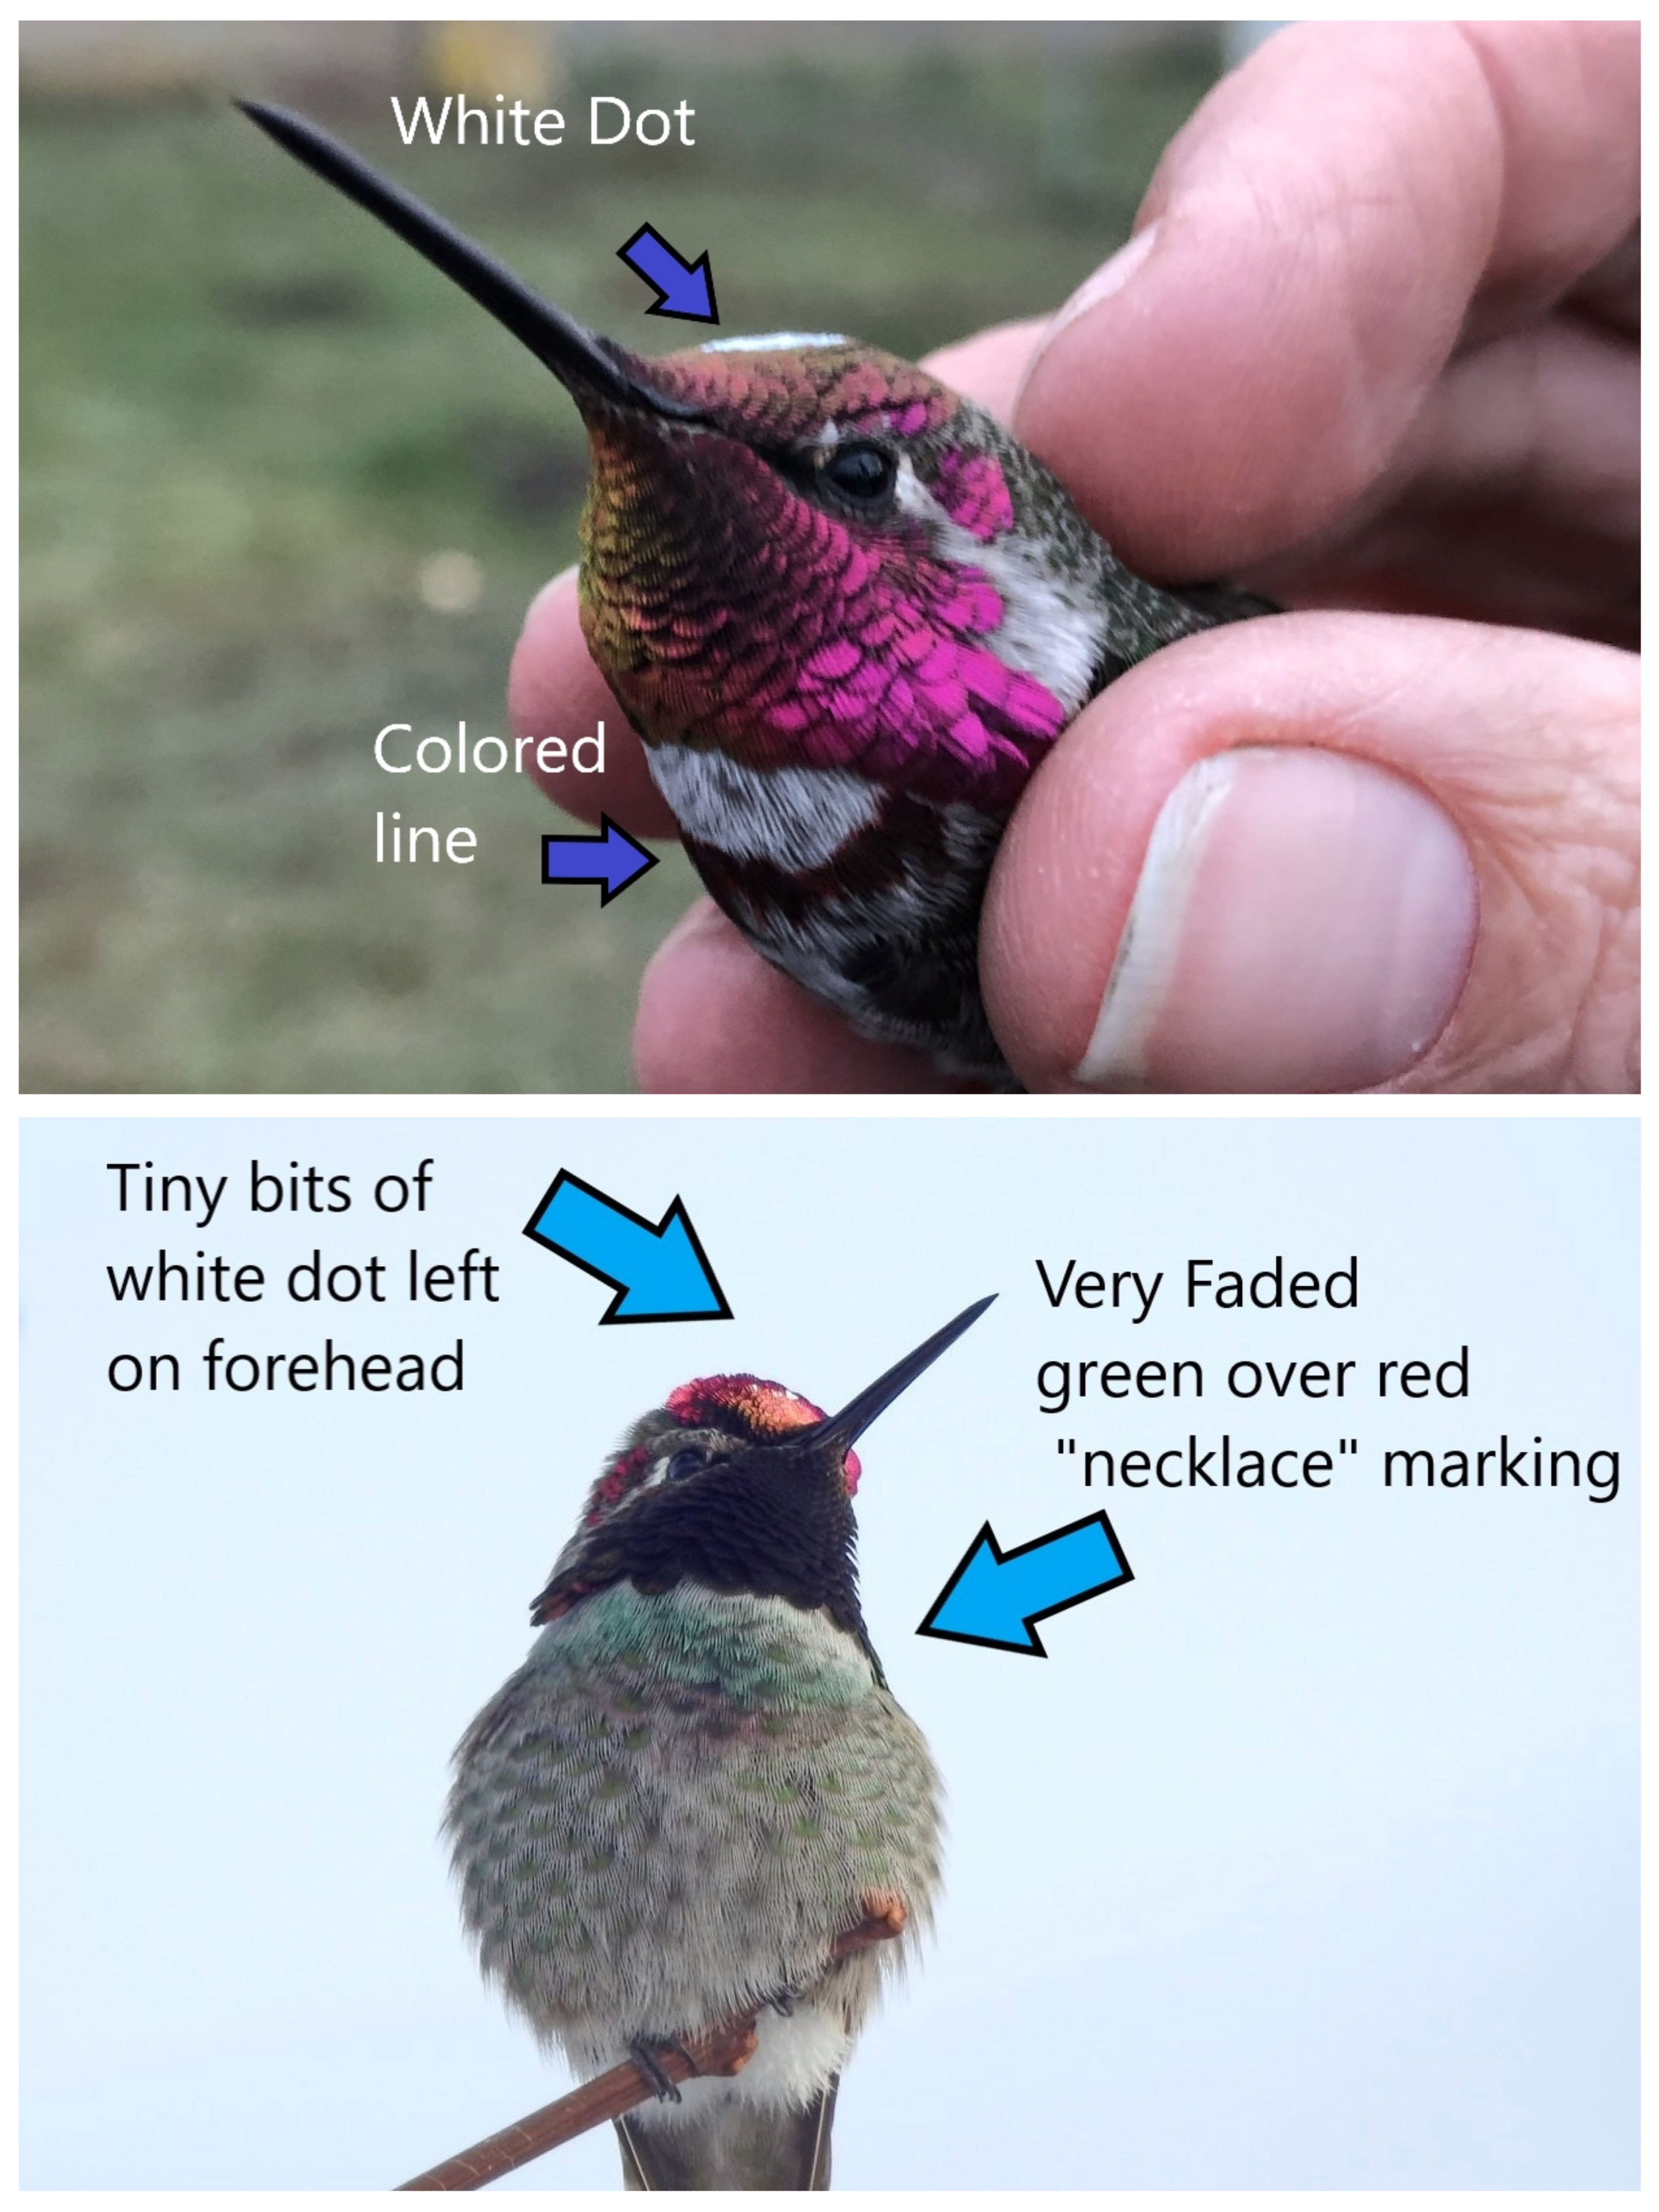 images show a hummingbird with a colored ink spot on its upper chest and a white dot on its crown. arrows and text point out and label these markings